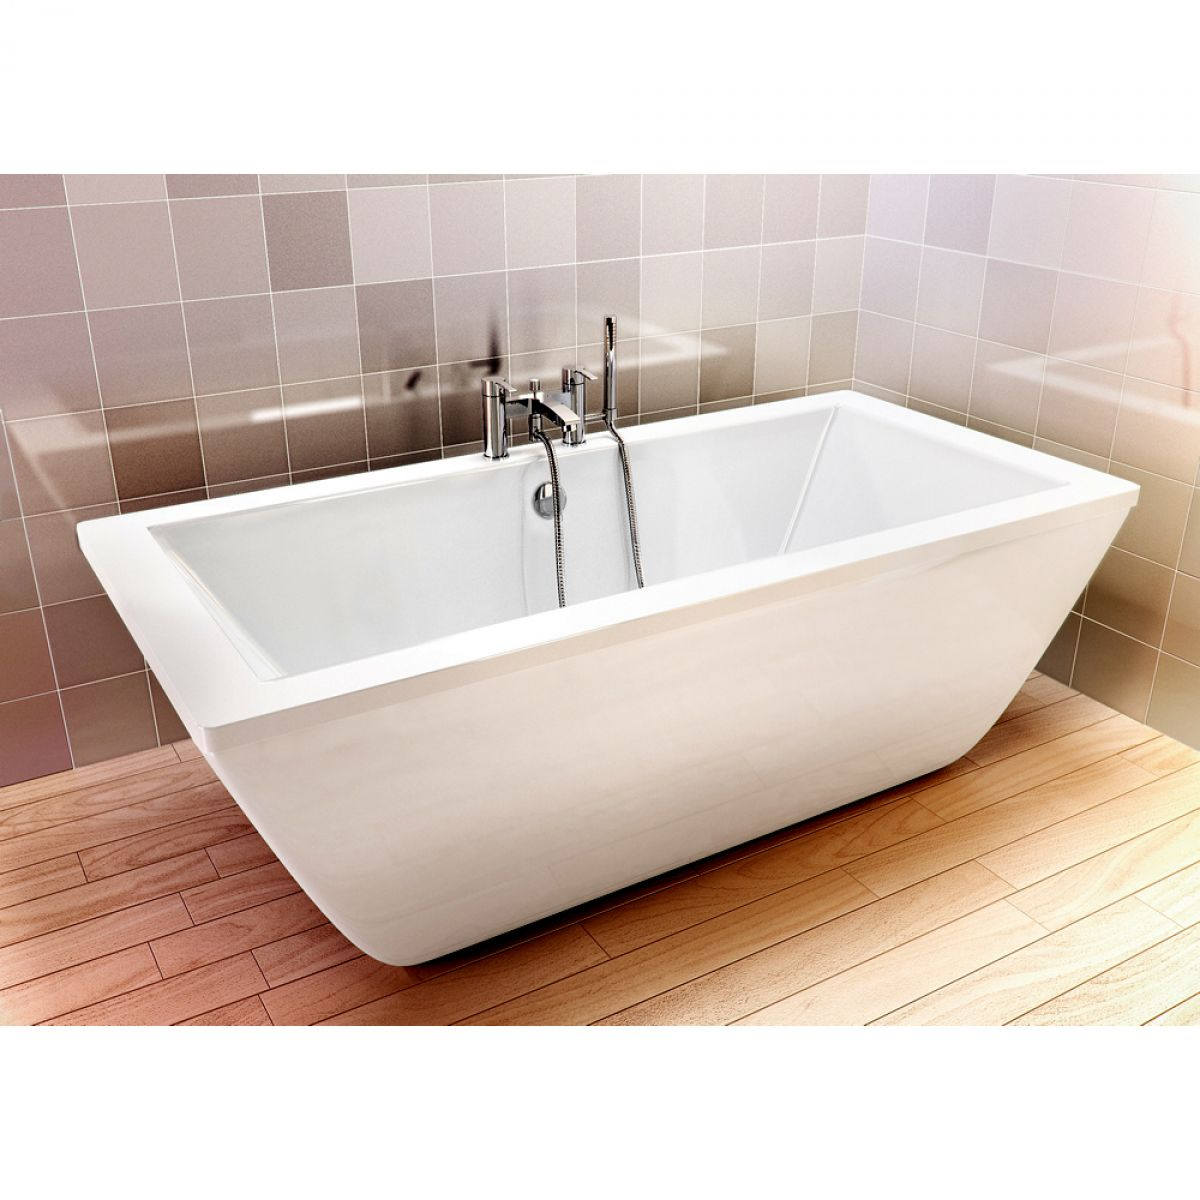 Cleargreen Freefortis Modern Freestanding Bath UK Bathrooms